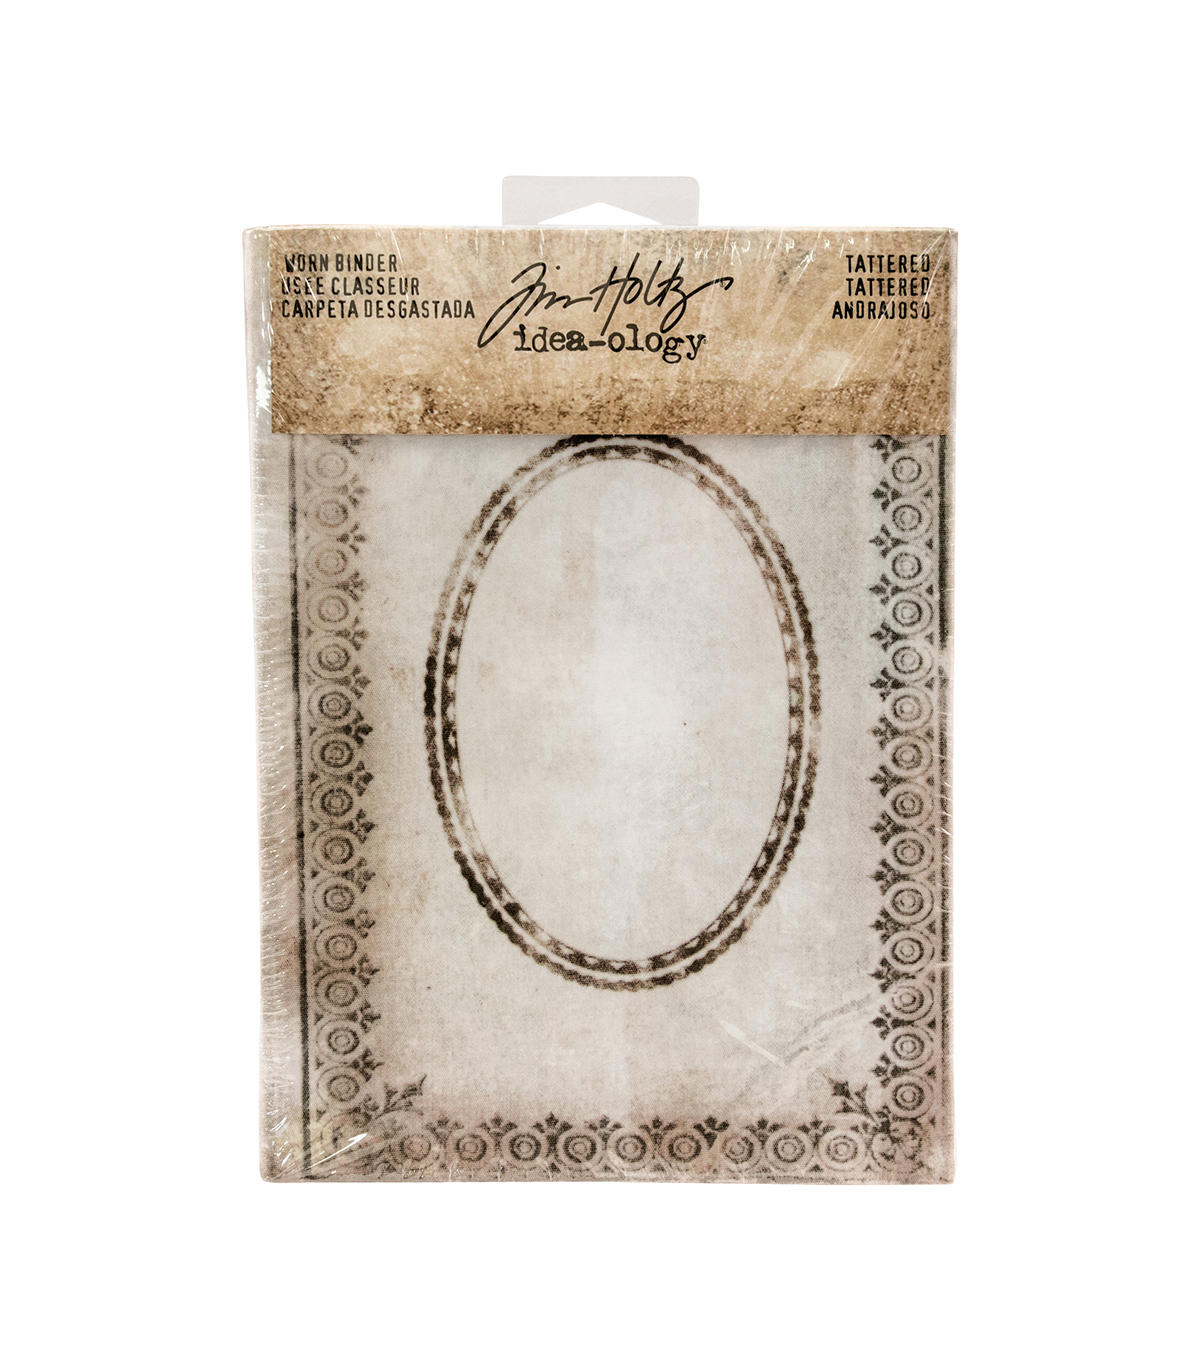 Tim Holtz Idea-ology Tattered Worn Binder